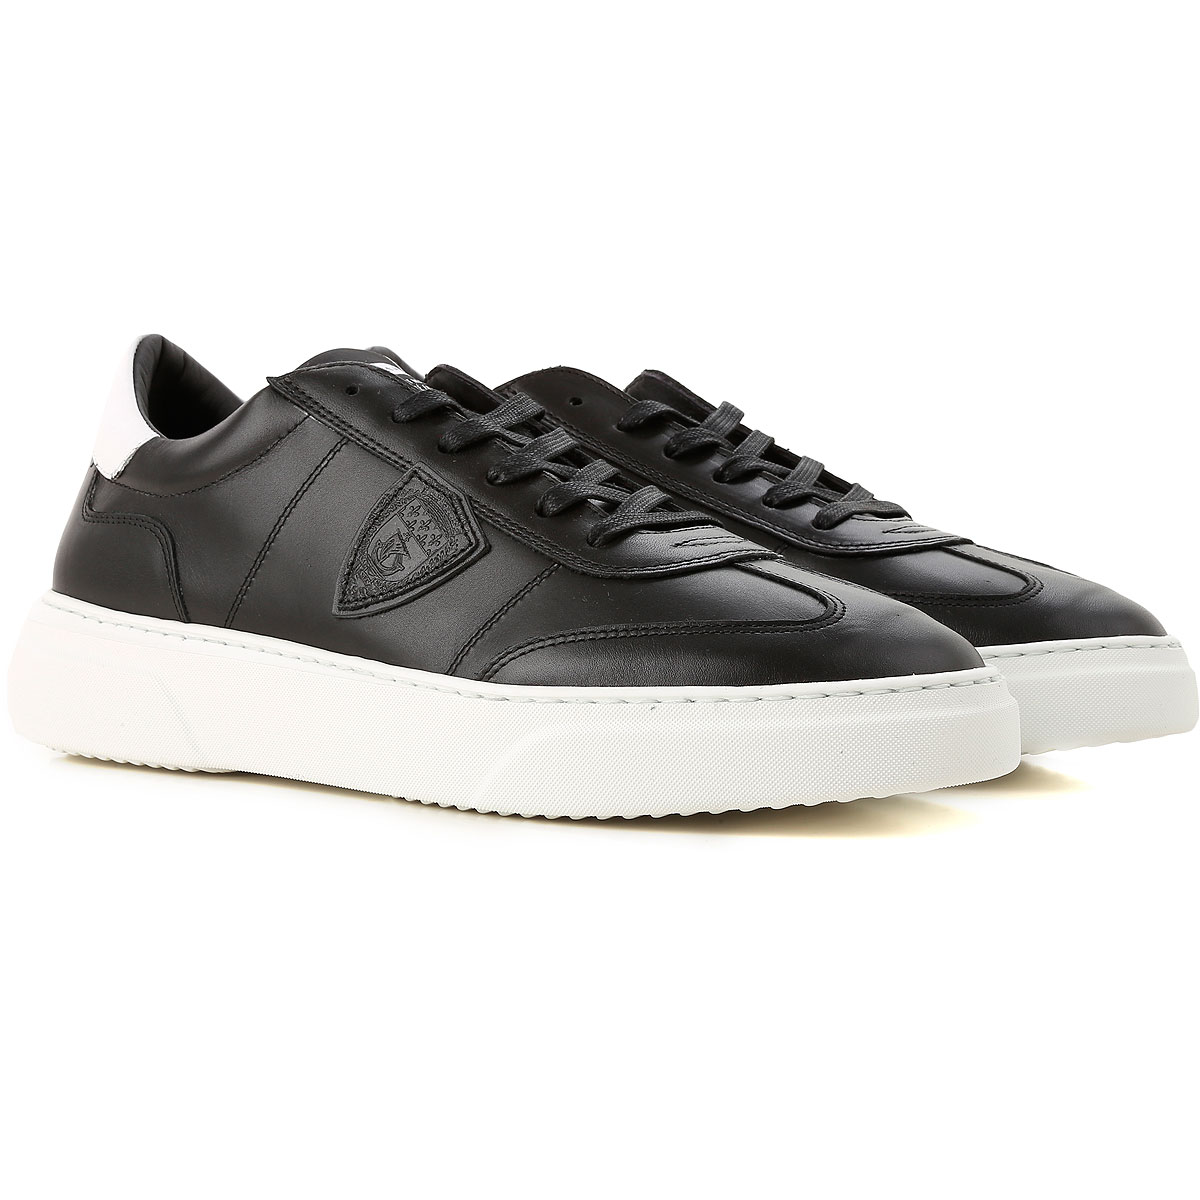 Philippe Model Sneakers for Men On Sale, Black, Leather, 2019, 10 11.5 6.5 7.5